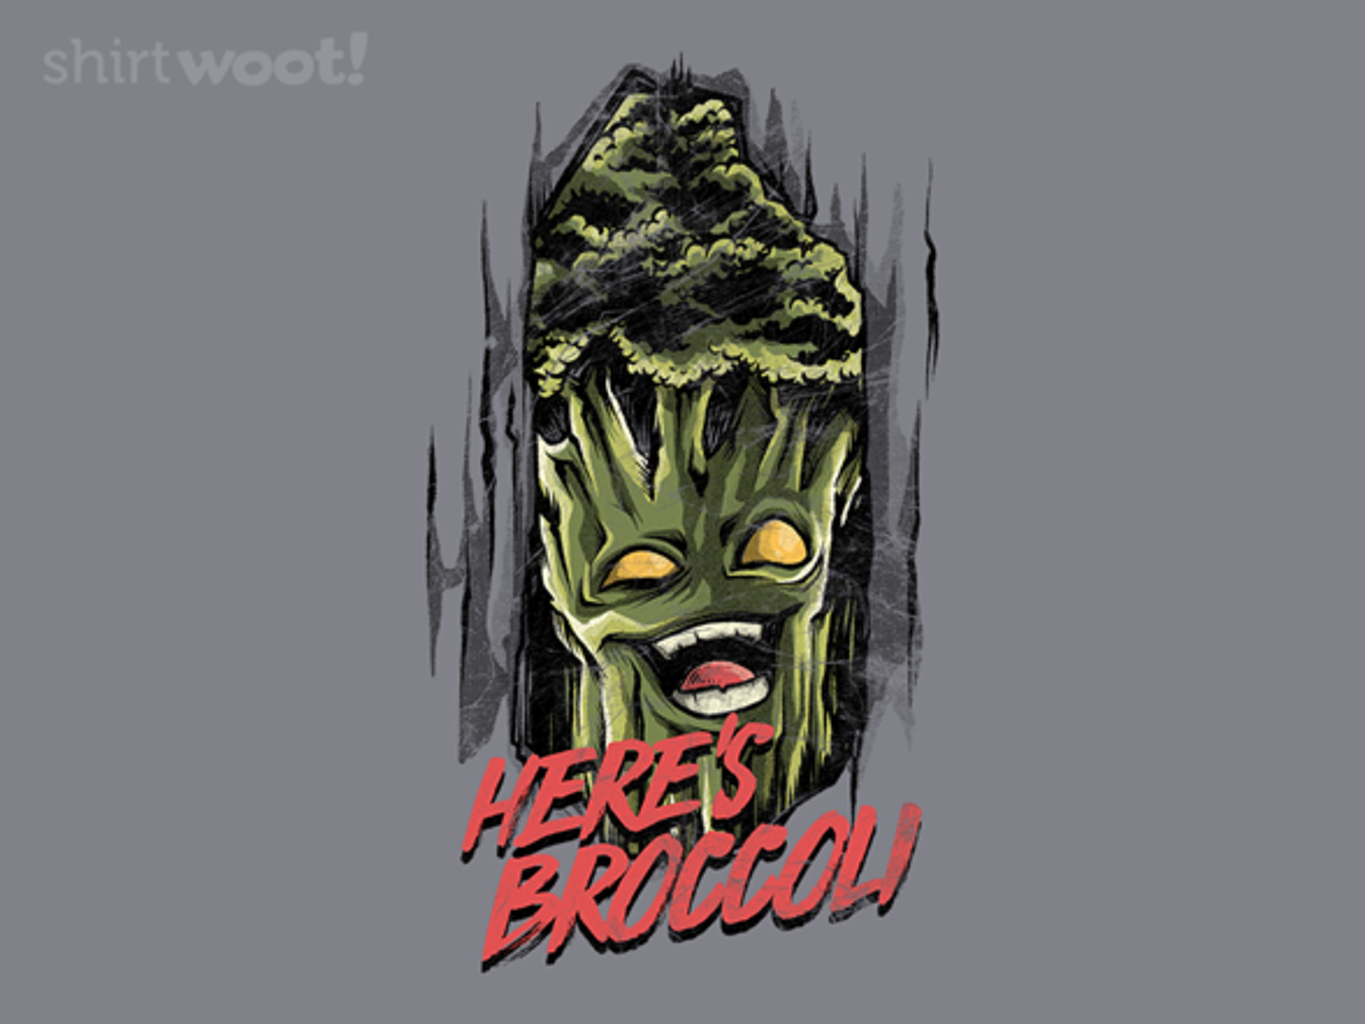 Woot!: Here's Broccoli!